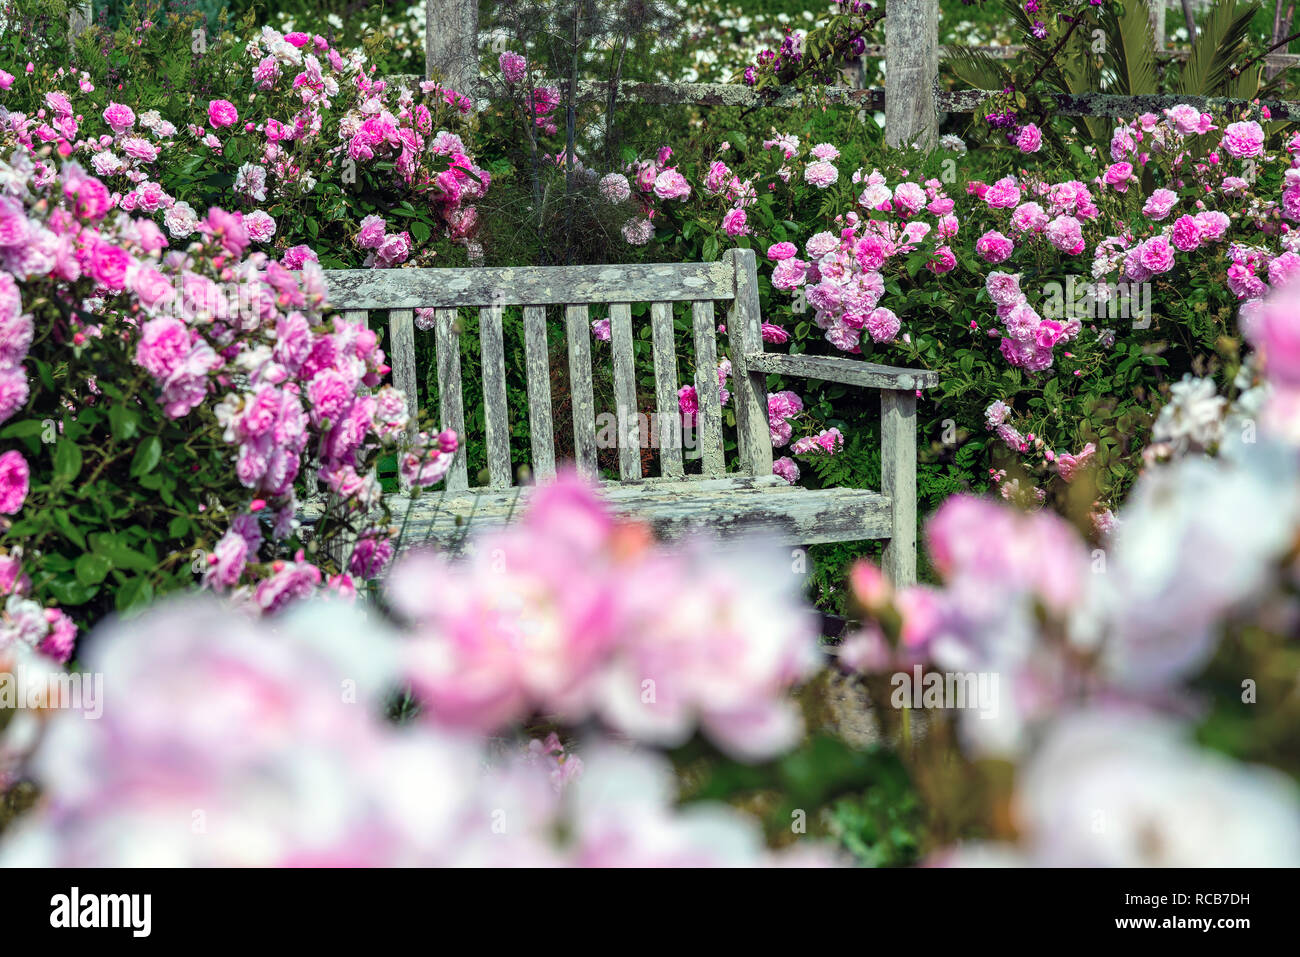 Old garden bench surrounded by pink flowering roses in traditional English garden, Sussex, South of England, UK - Stock Image